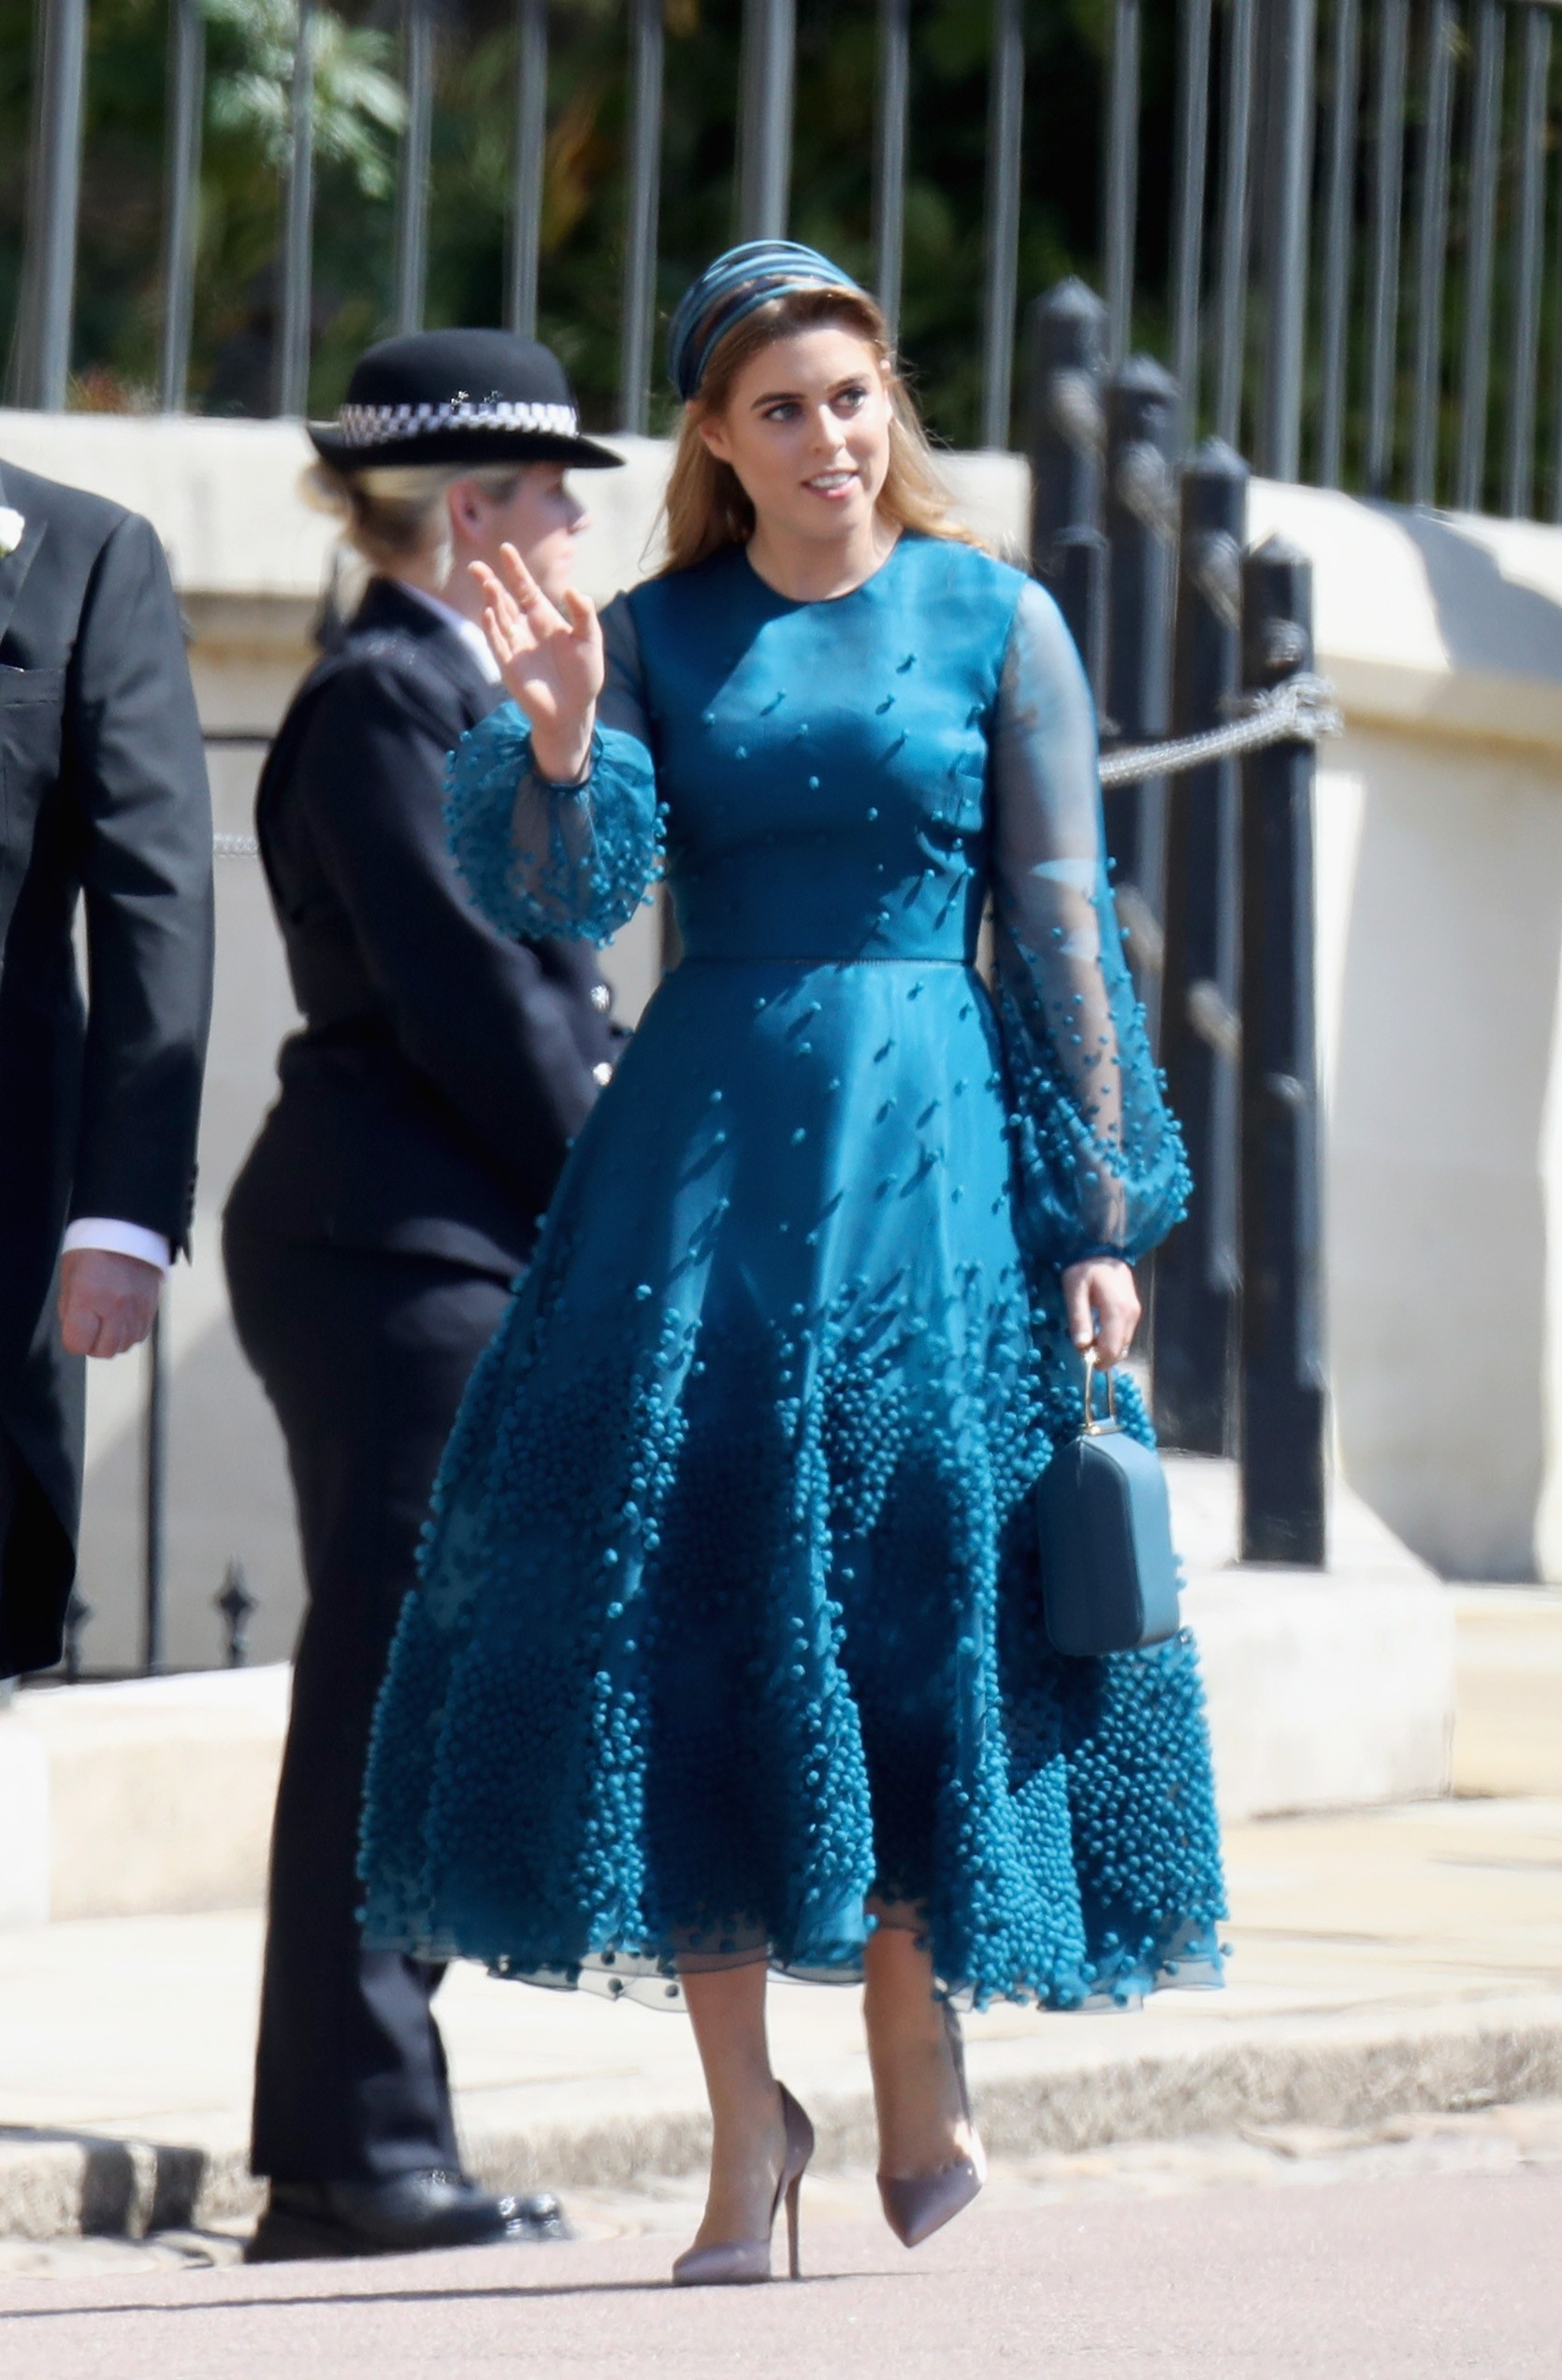 Photos Best And Worst Dressed Celebs From The Royal Wedding